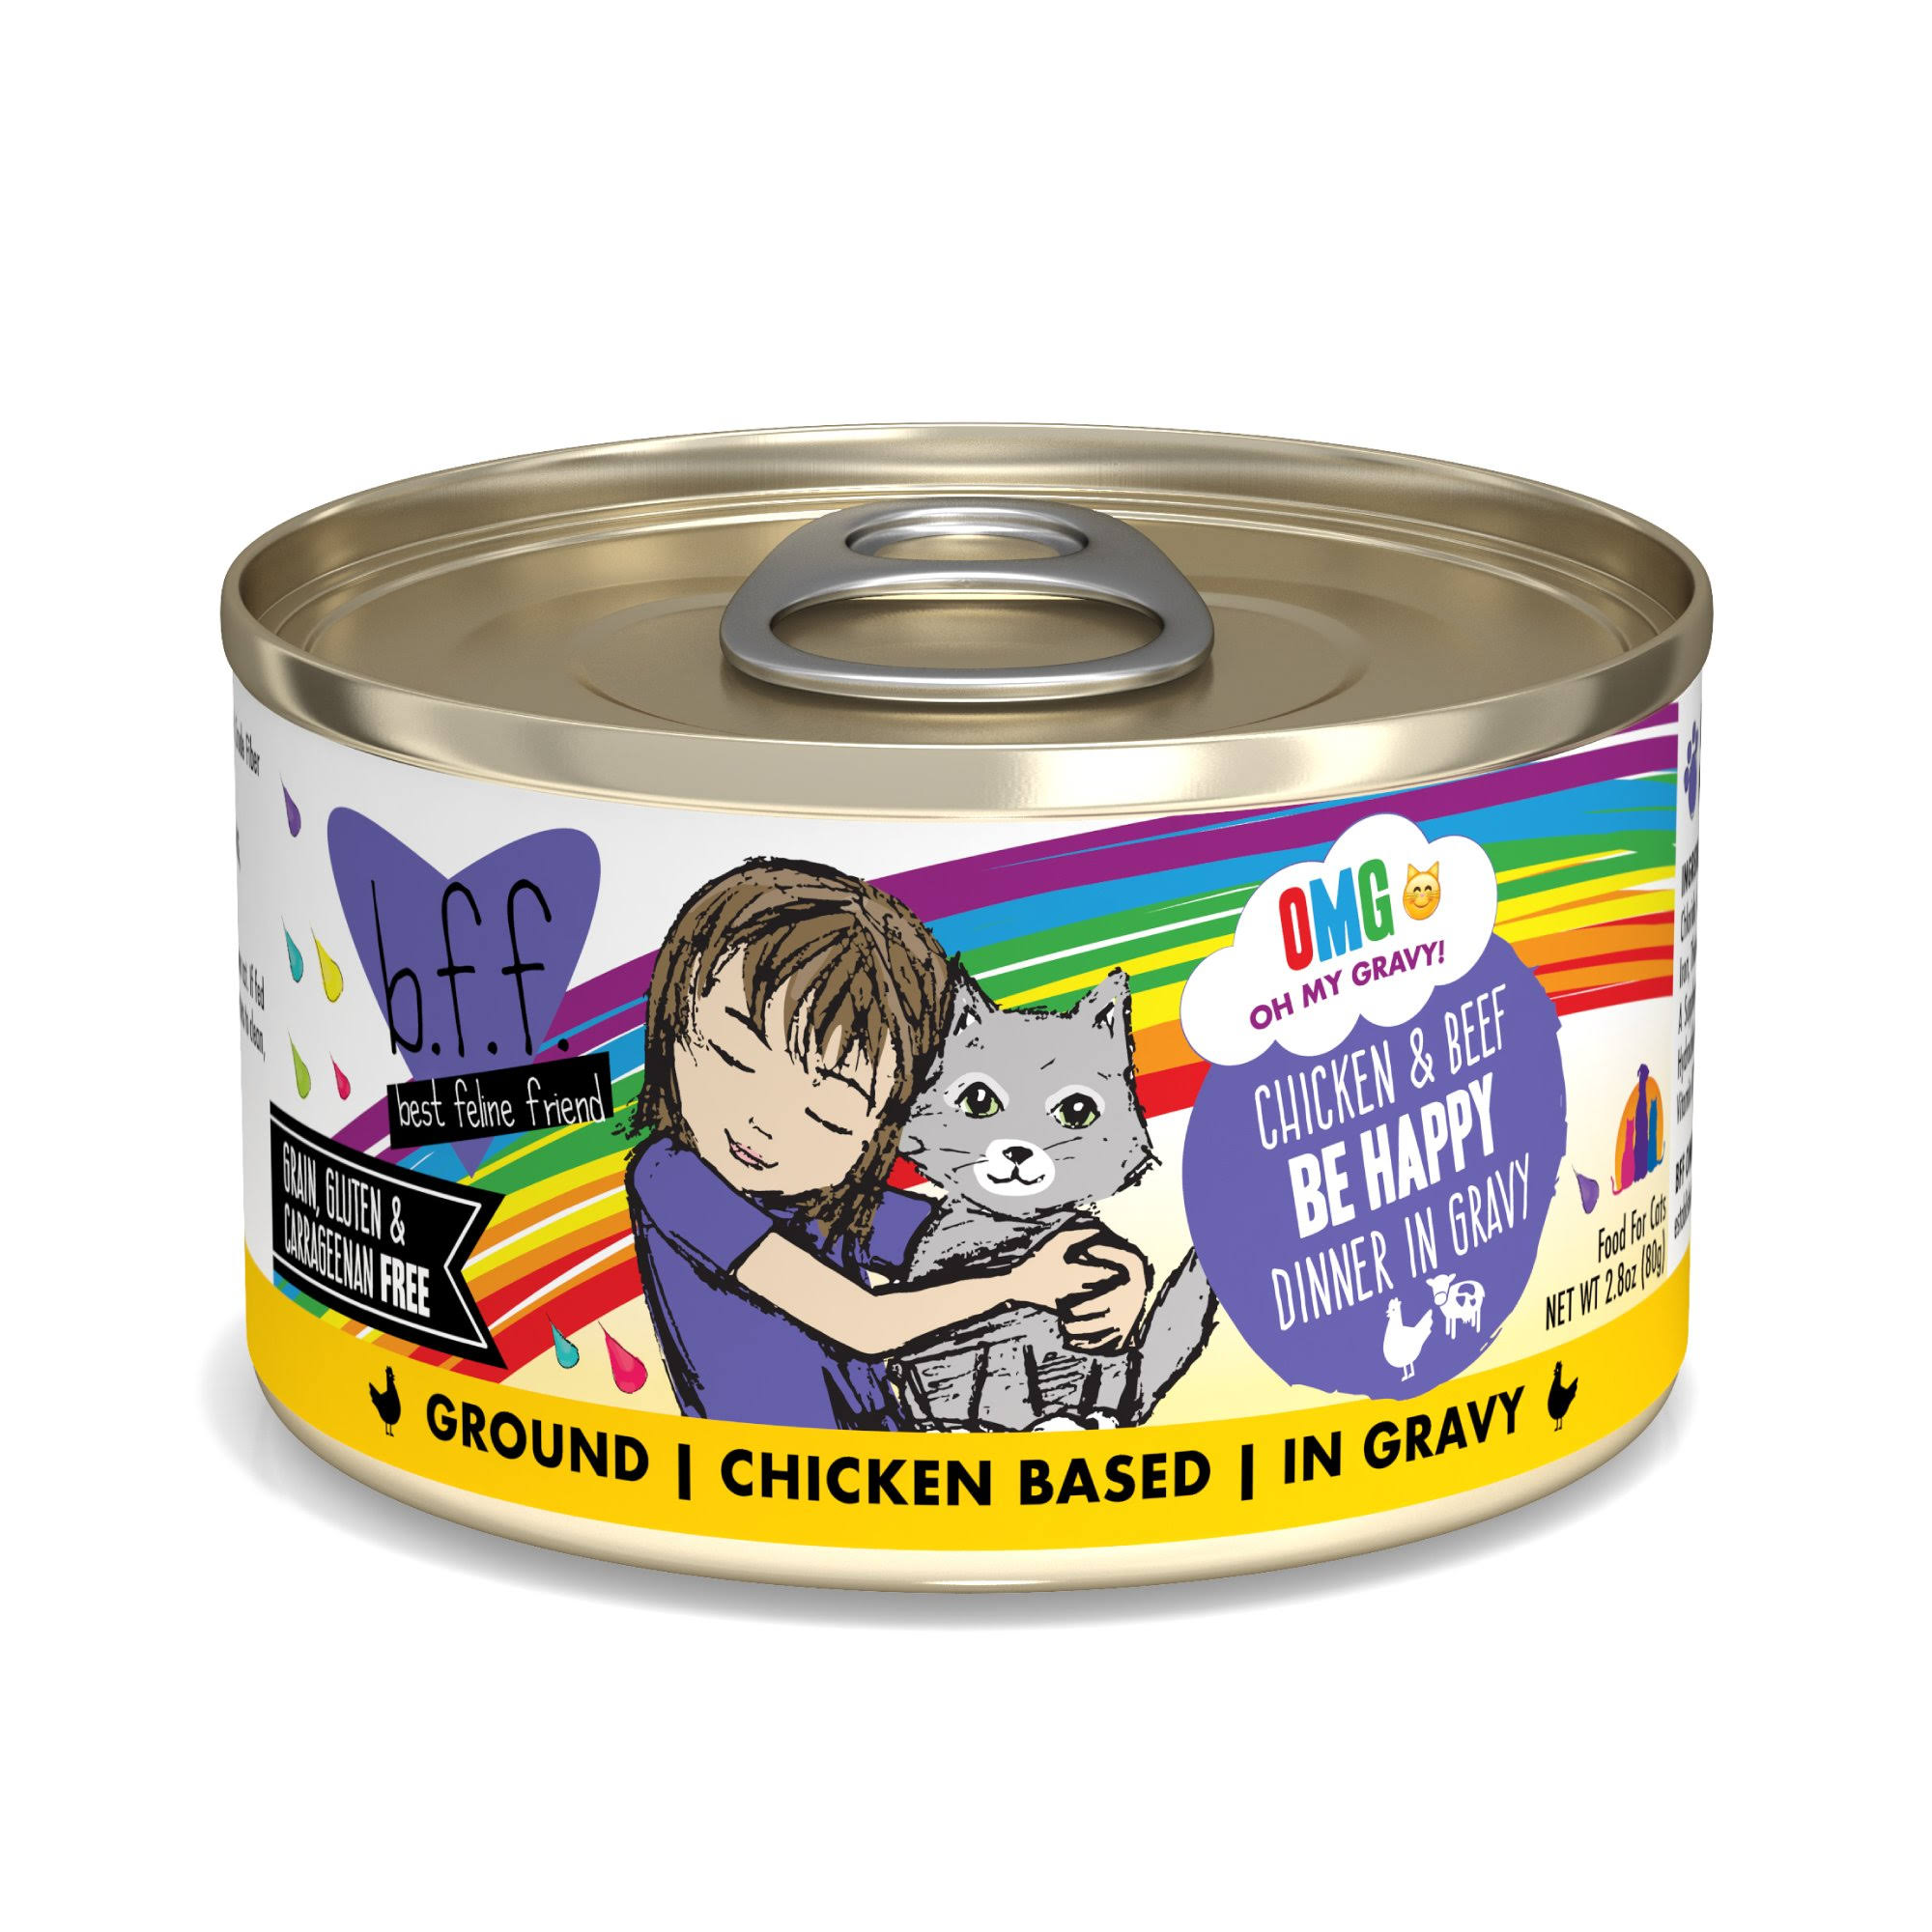 B.f.f. OMG Chicken & Beef Be Happy Dinner in Gravy OMG Food for Cats - 2.8 oz